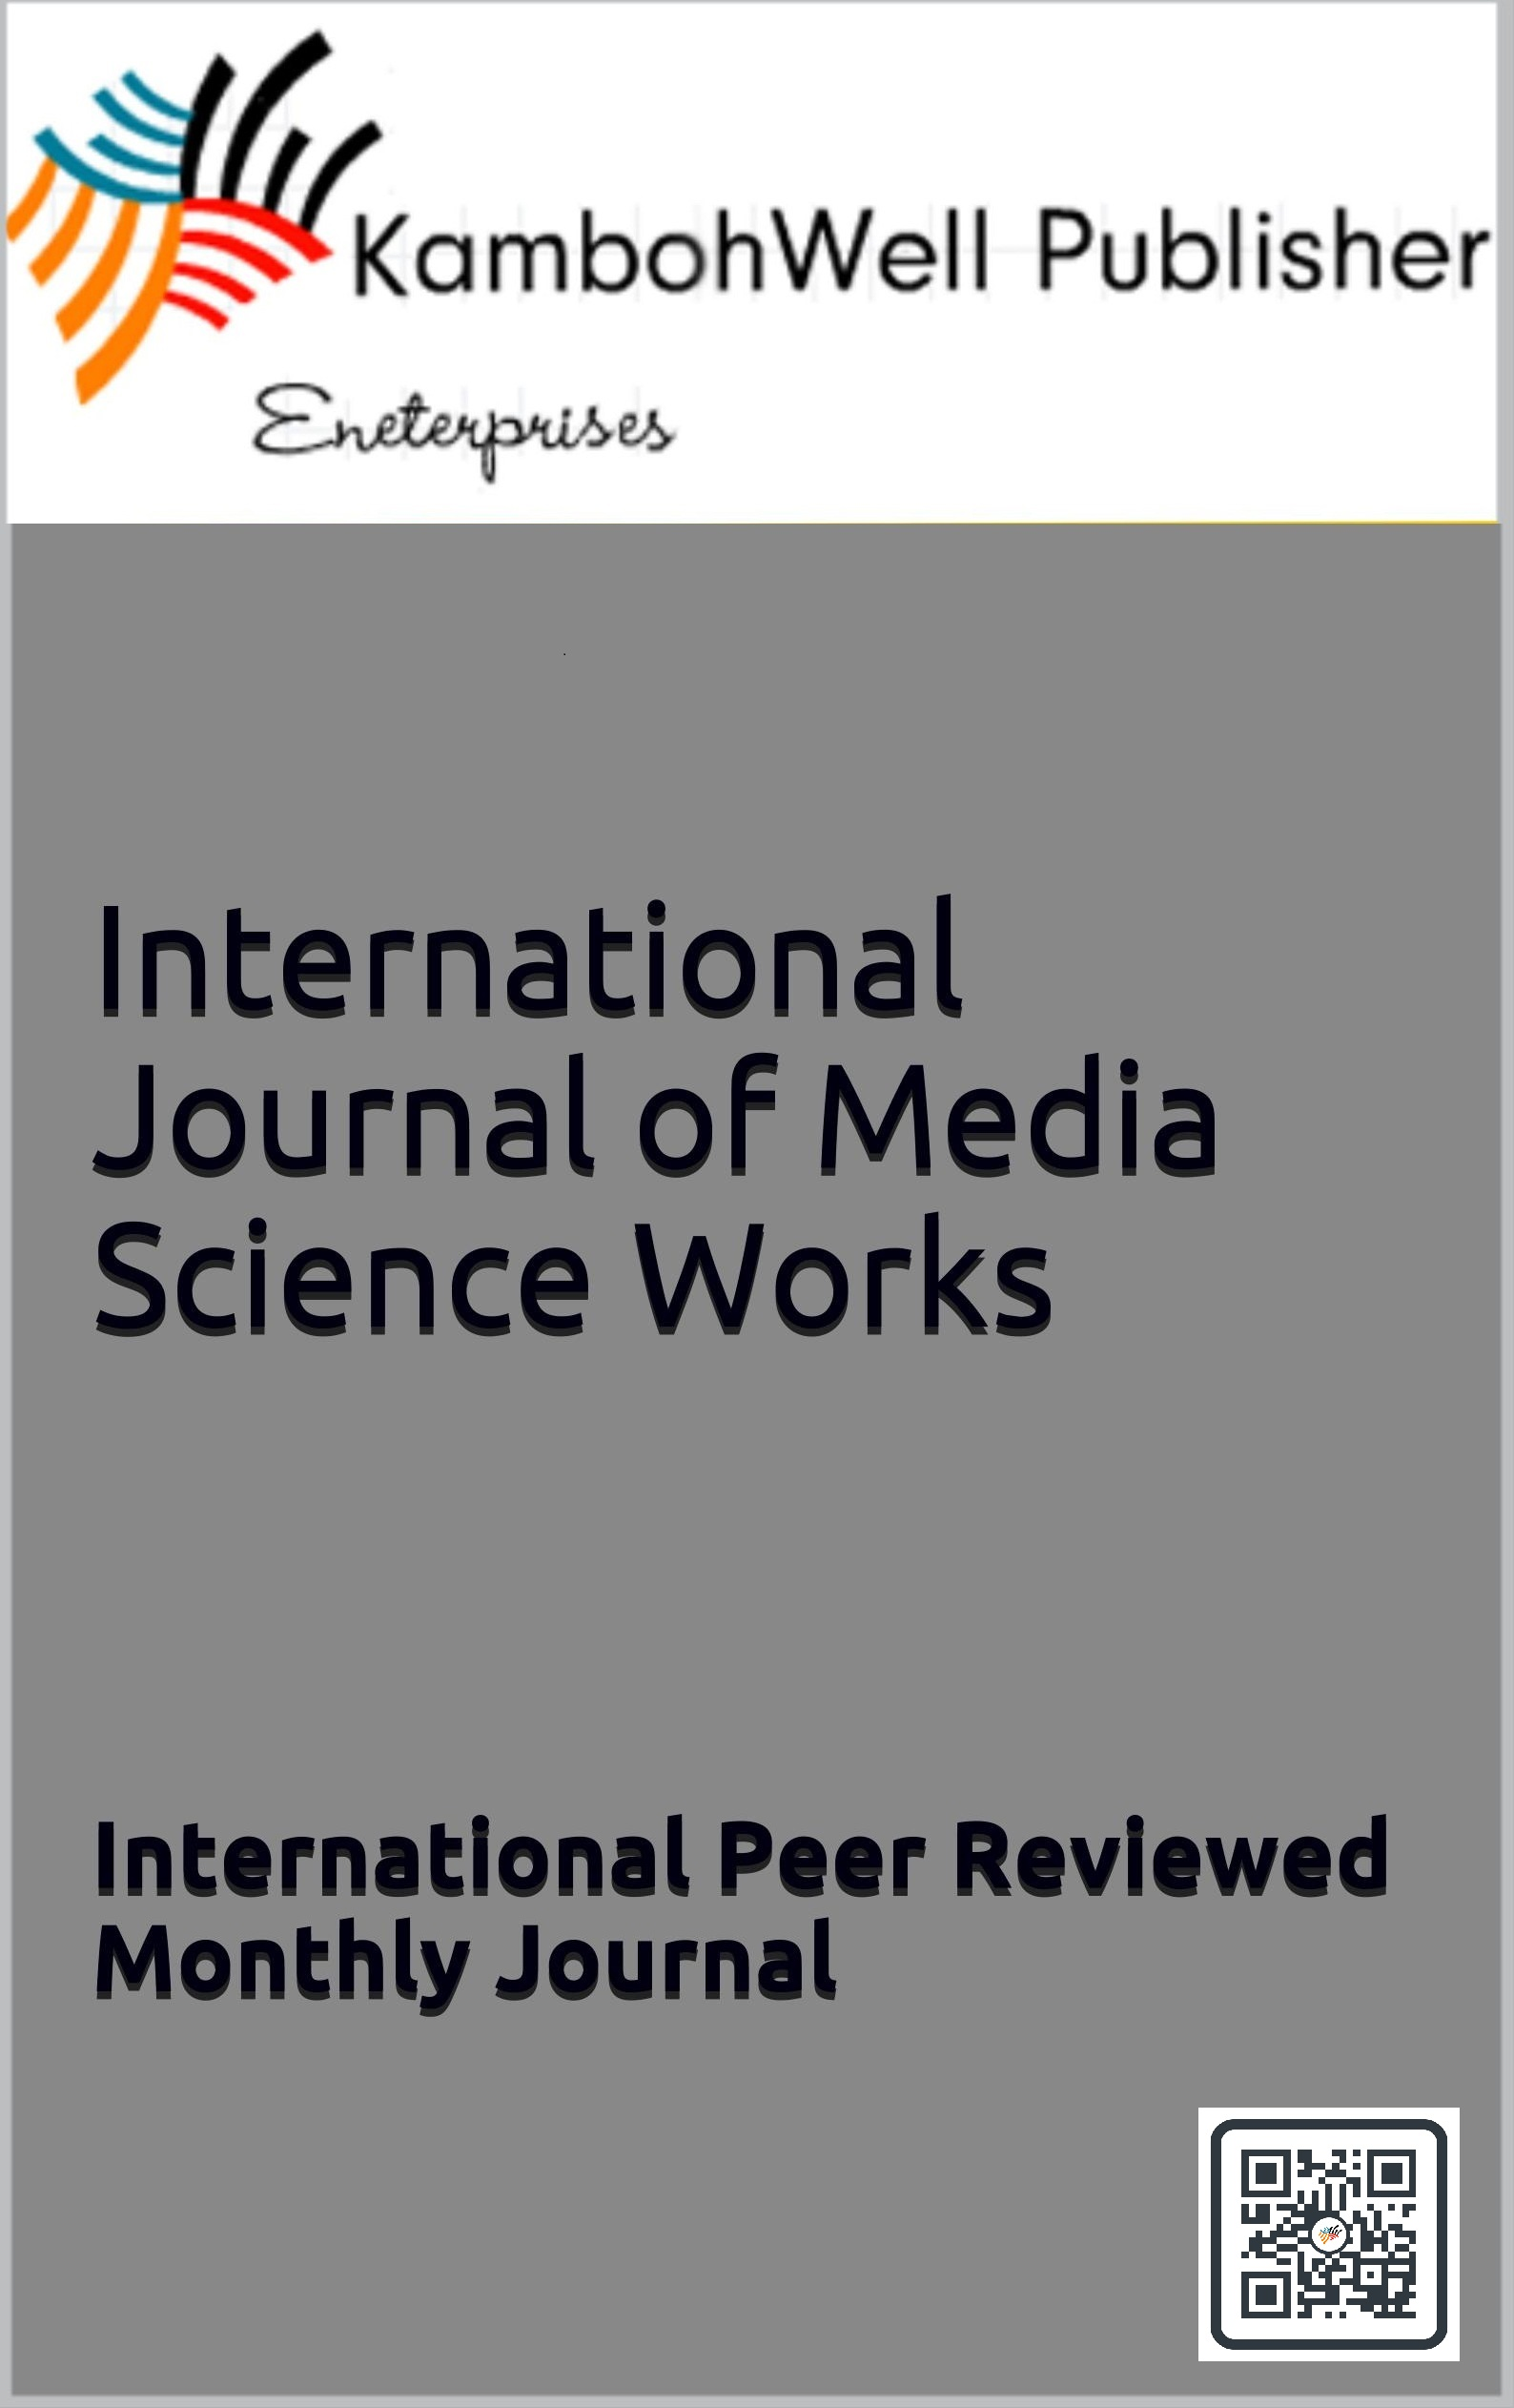 International Journal of Media Science Works